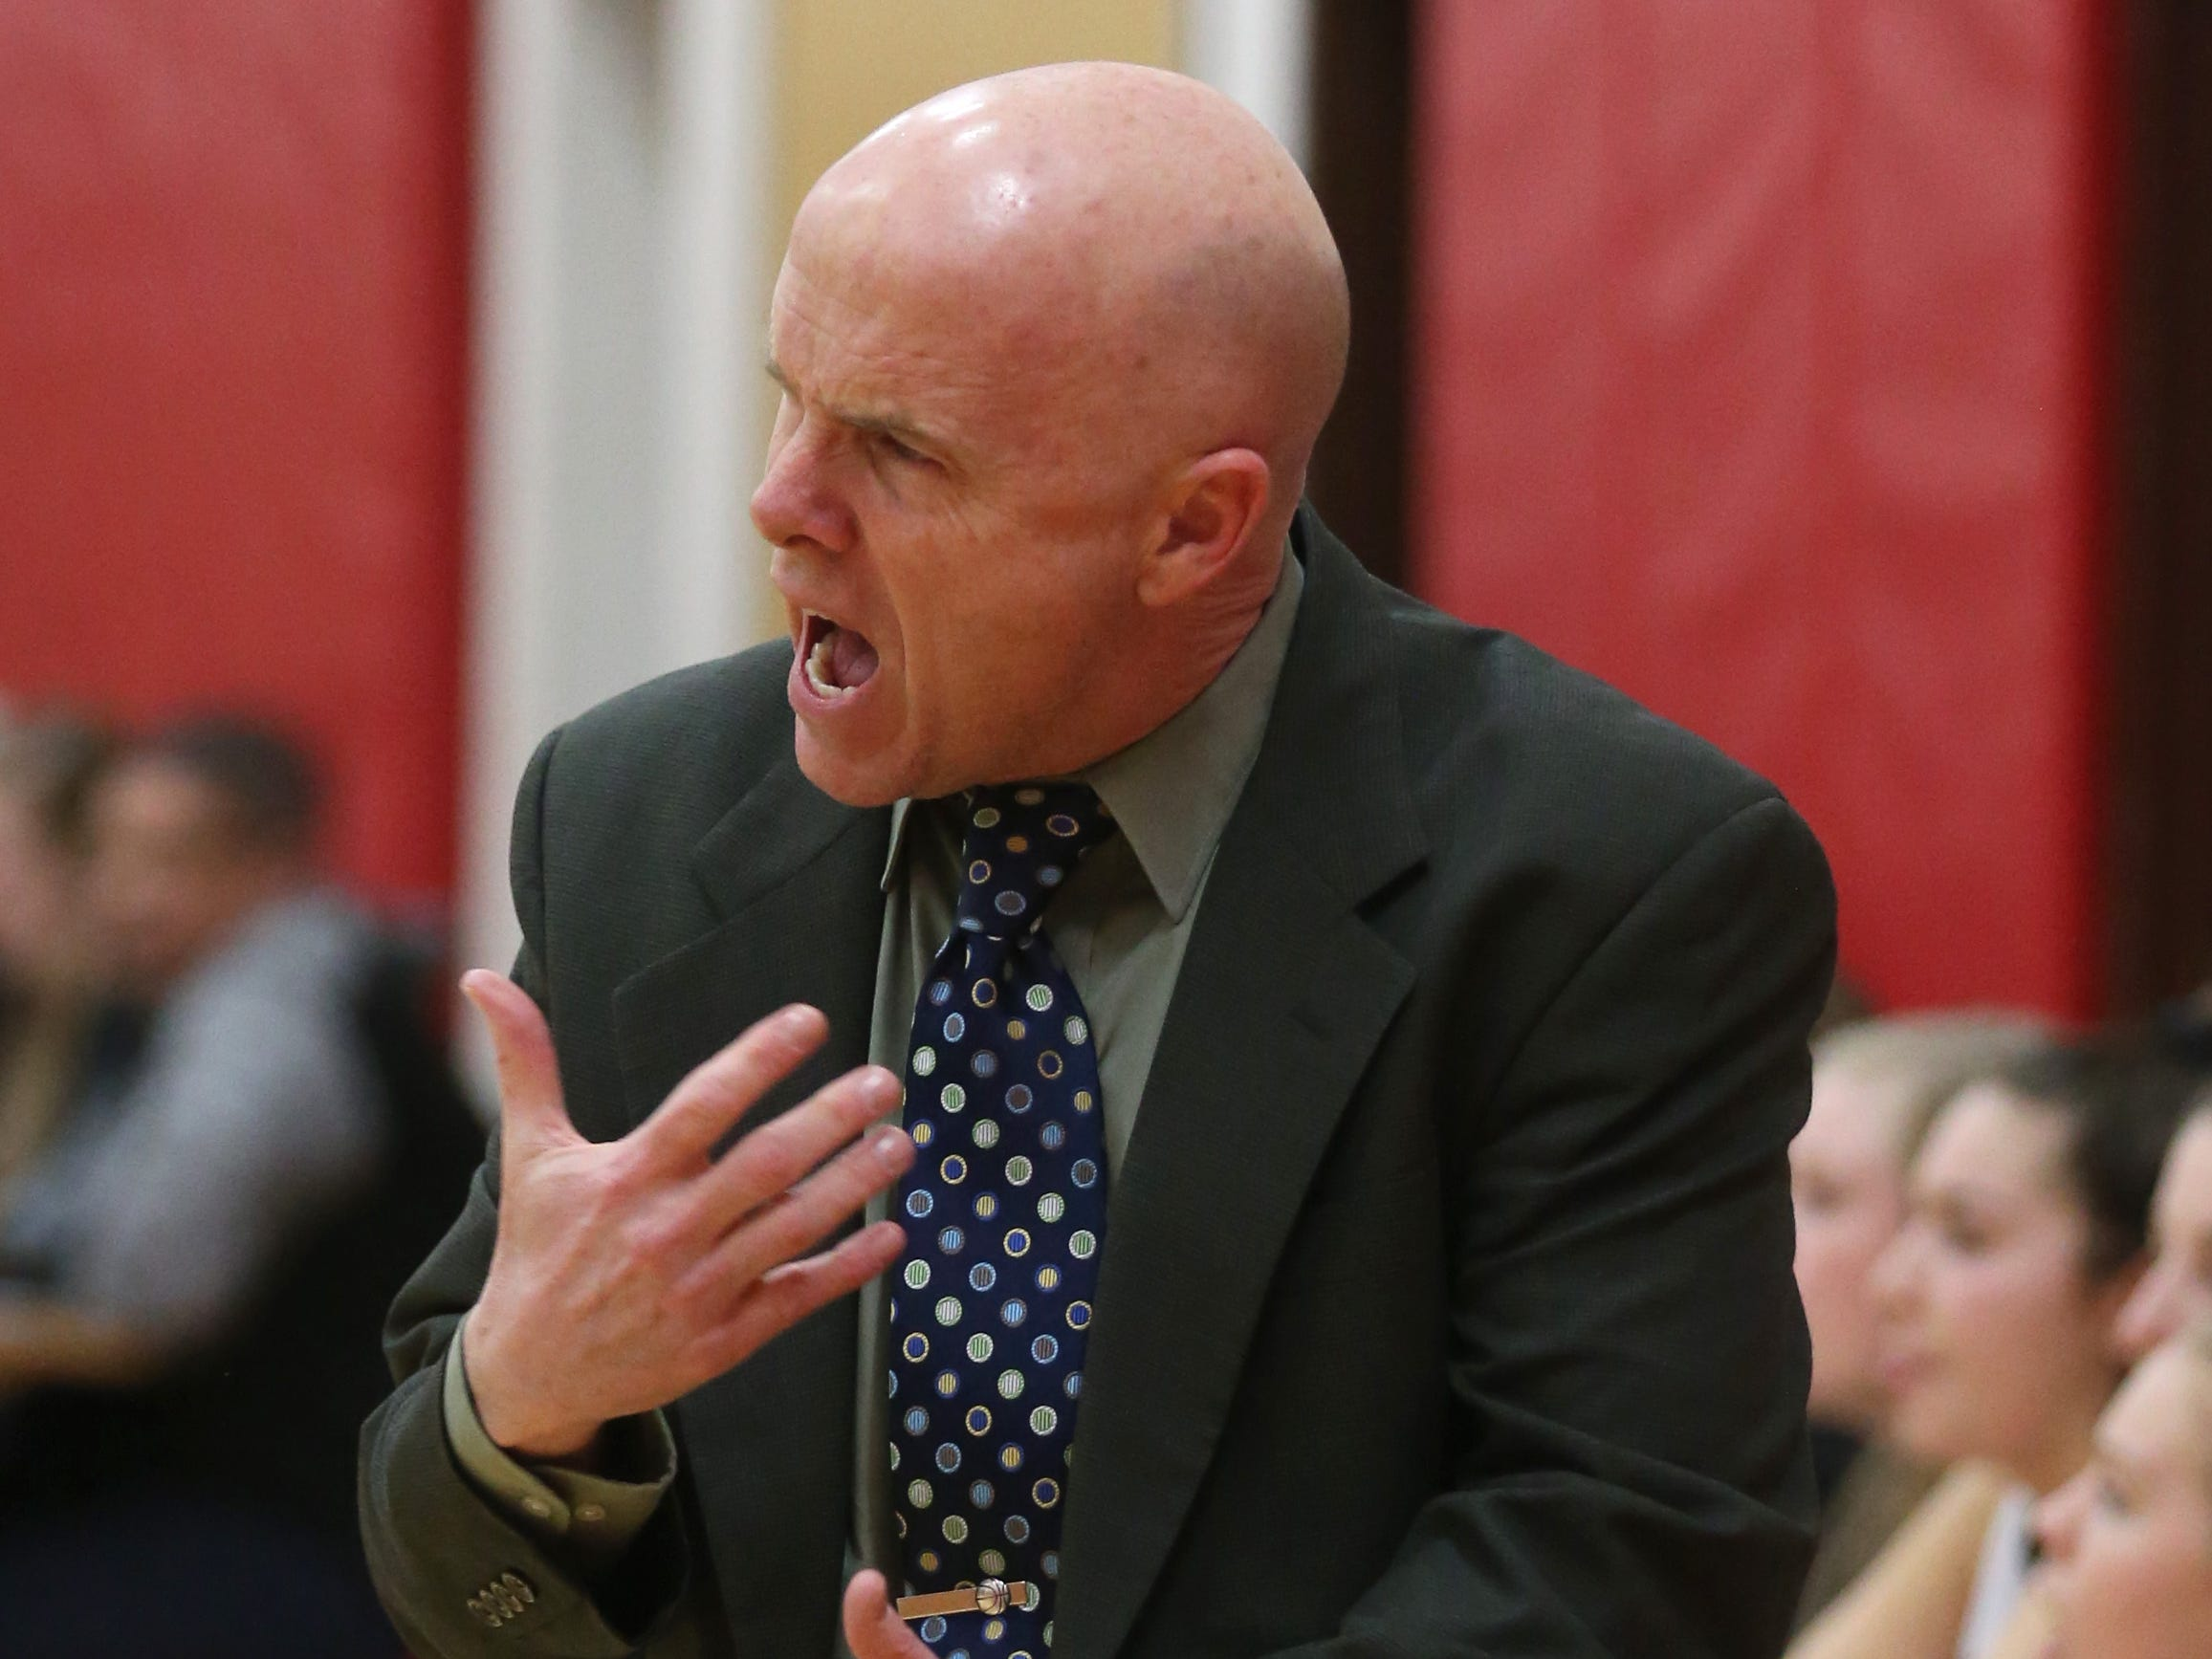 Penfield head coach Mark Vogt encourages tighter defense.